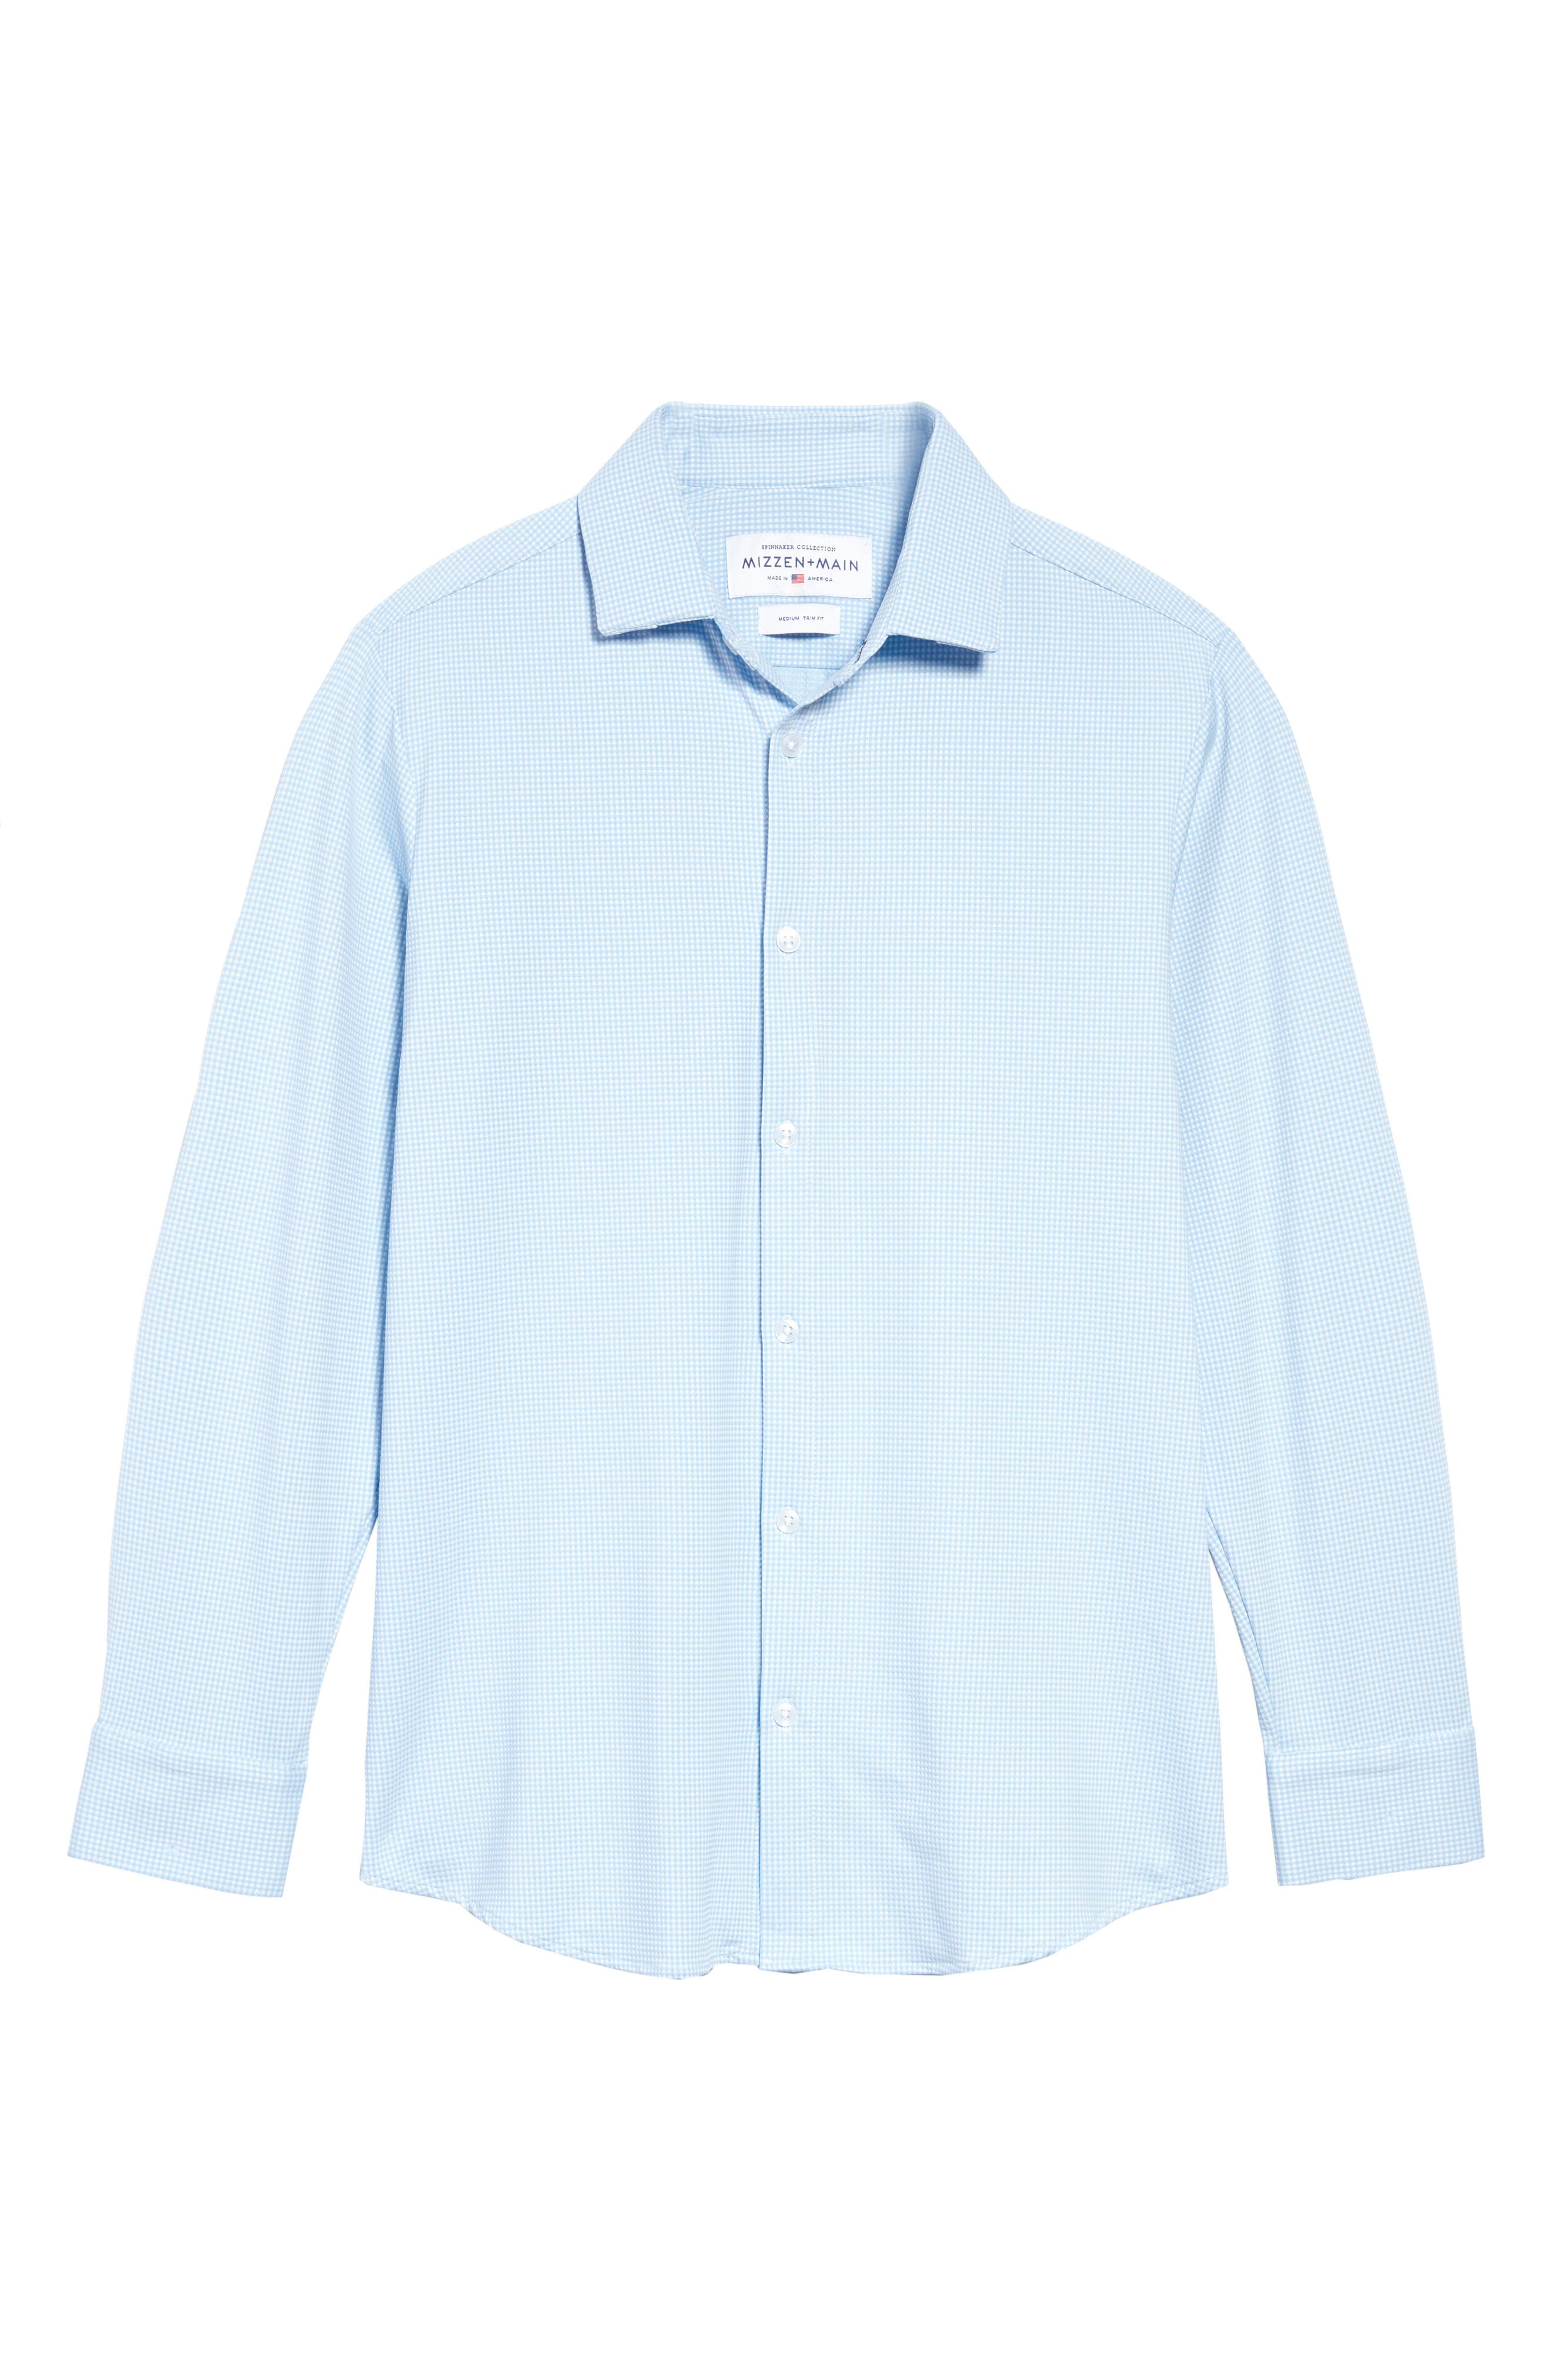 Whitman Dobby Gingham Performance Sport Shirt,                             Alternate thumbnail 6, color,                             BLUE